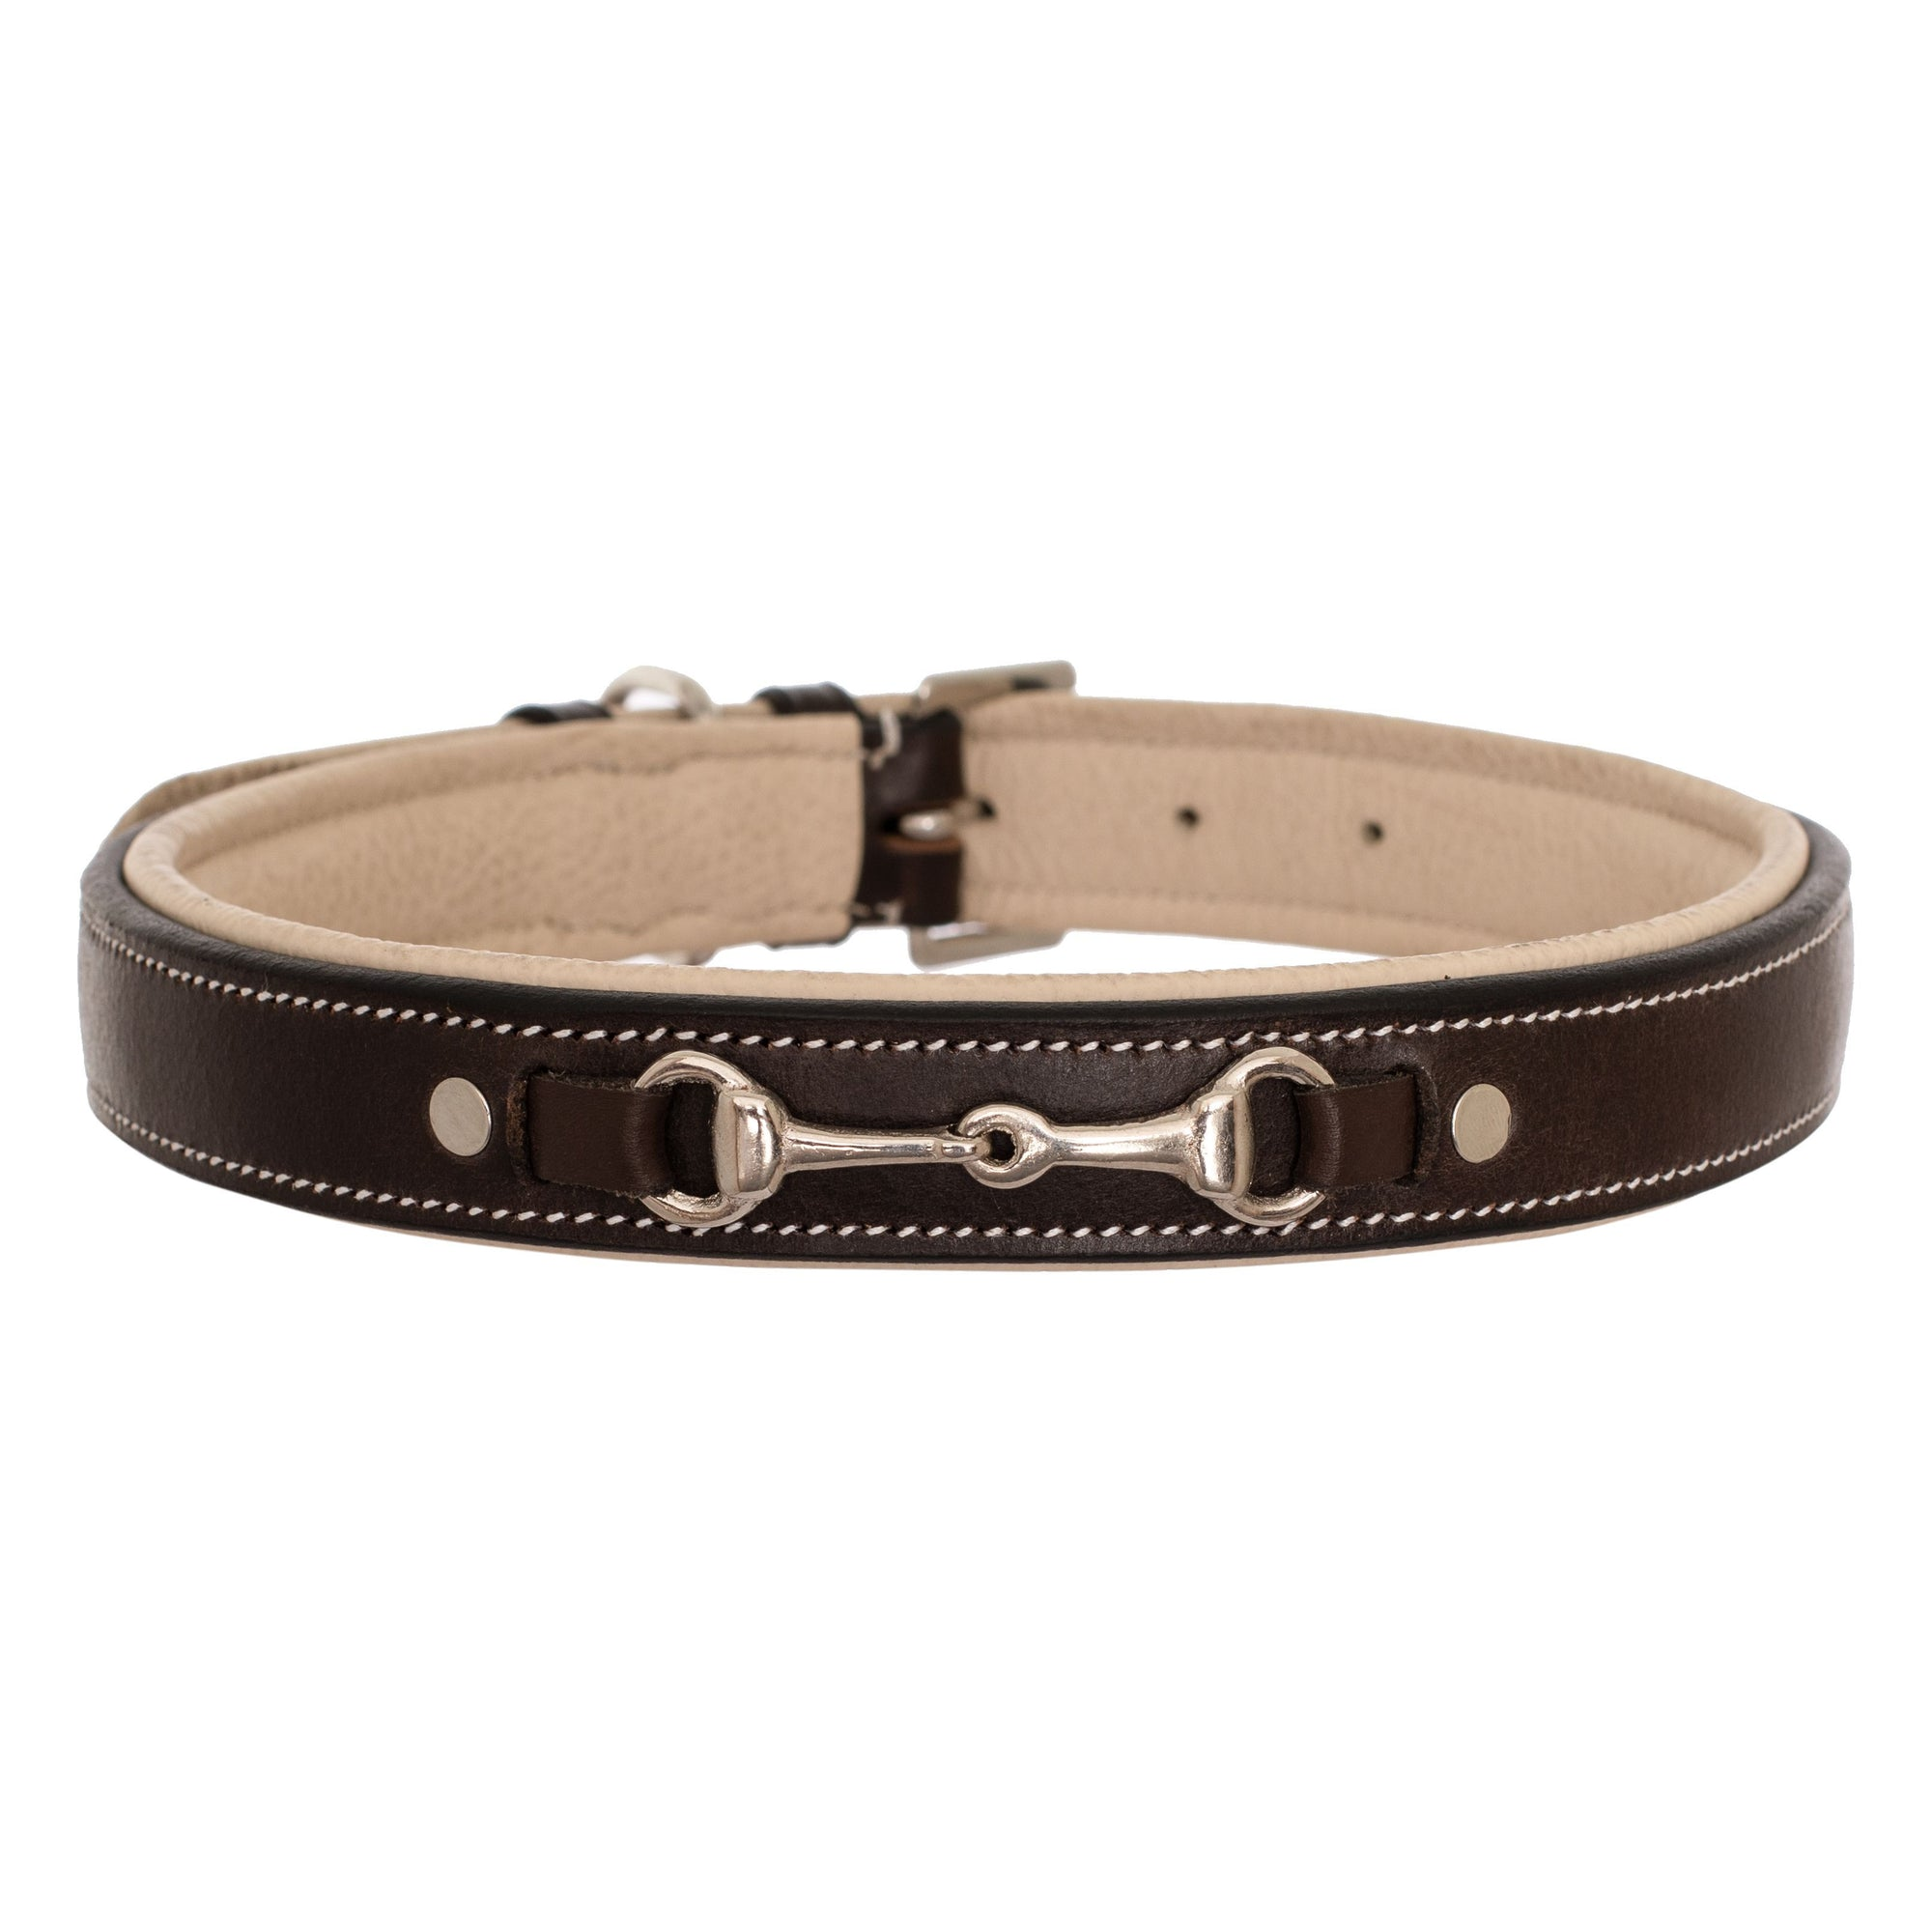 ExionPro Silver Snaffle Padded Leather Dog Collar - Beige Padding-Bridles & Reins